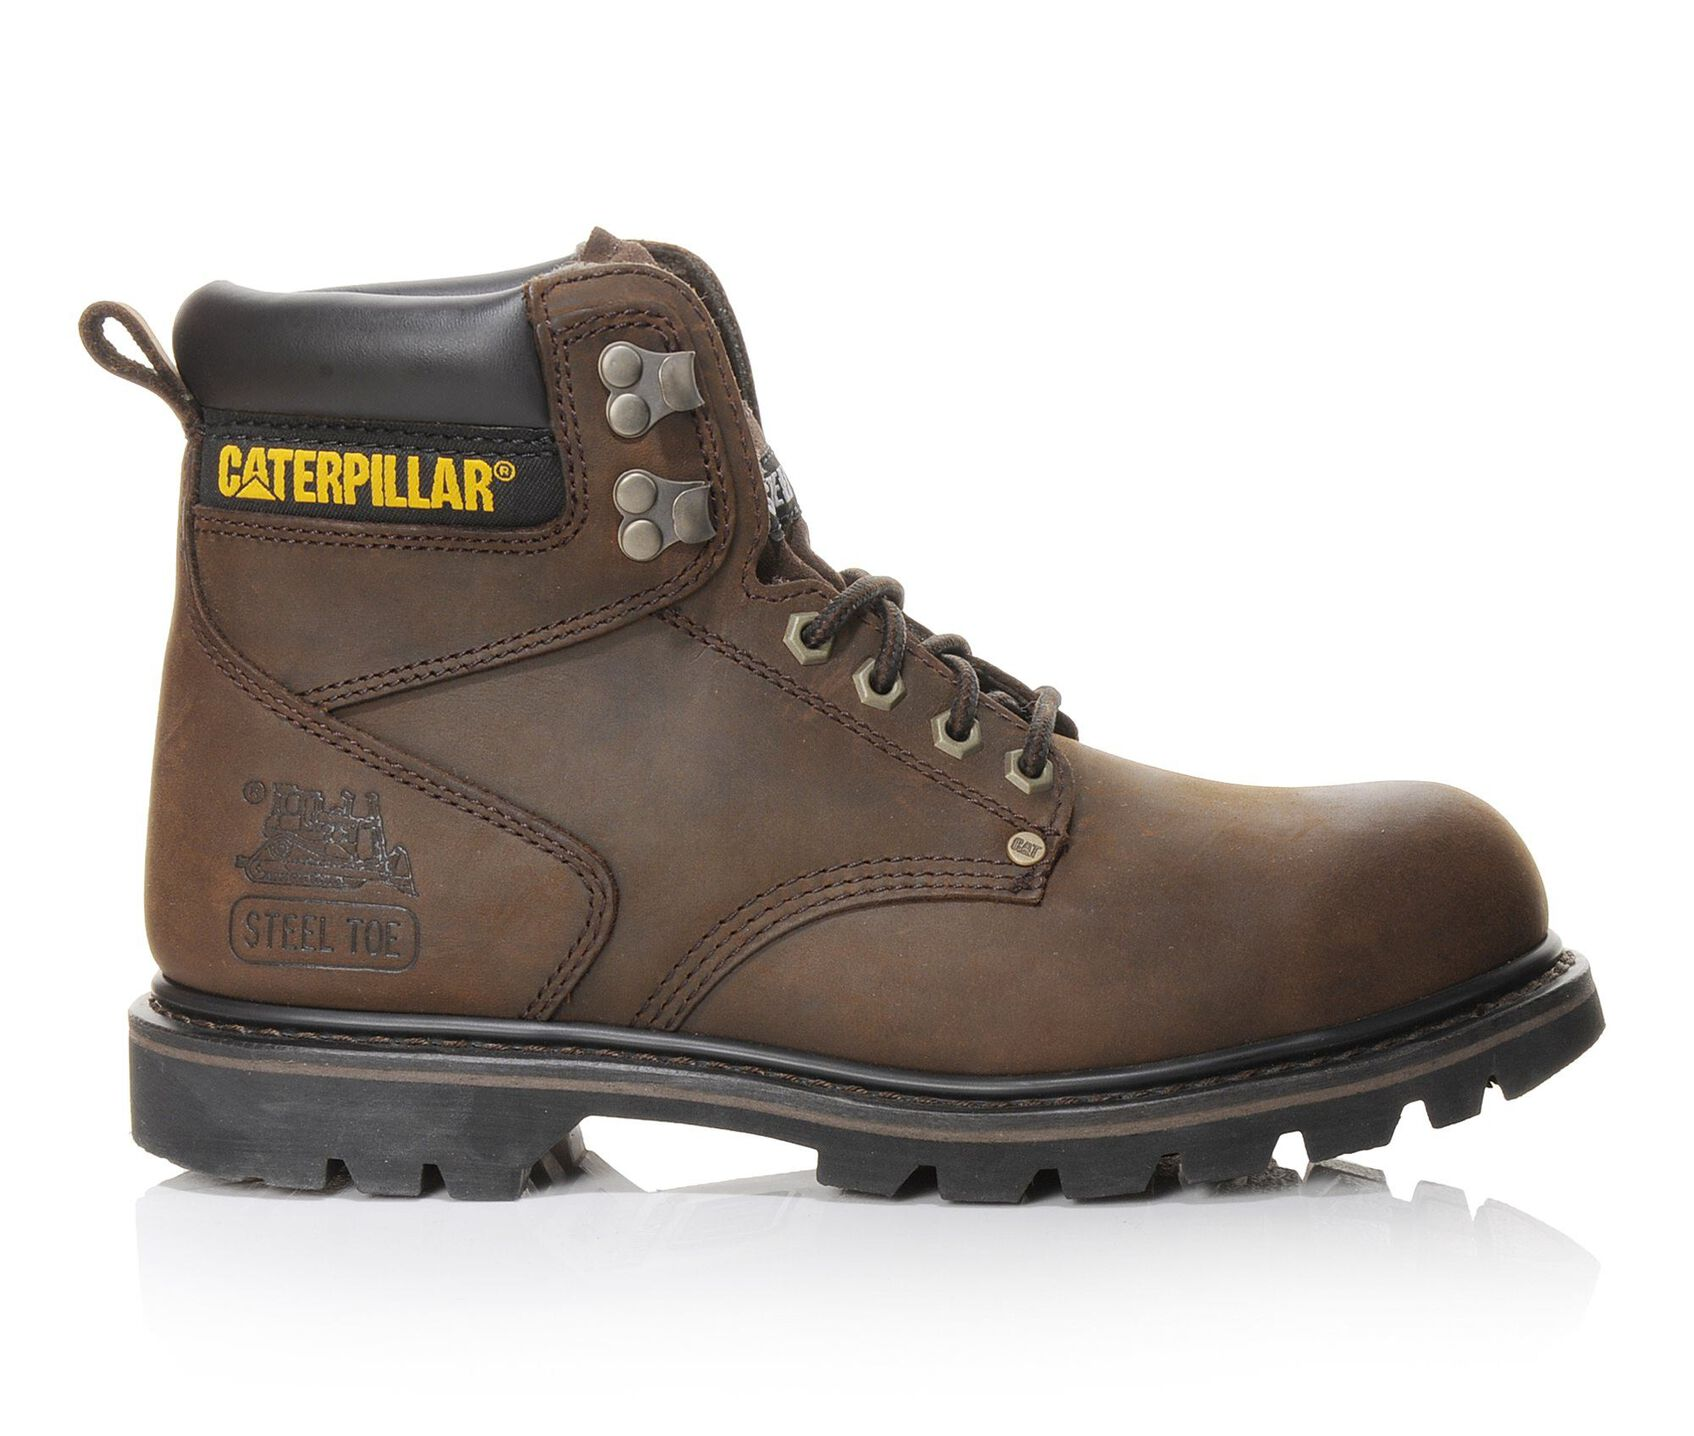 d517ac0c0ac Men's Caterpillar Second Shift 6 In Steel Toe Work Boots